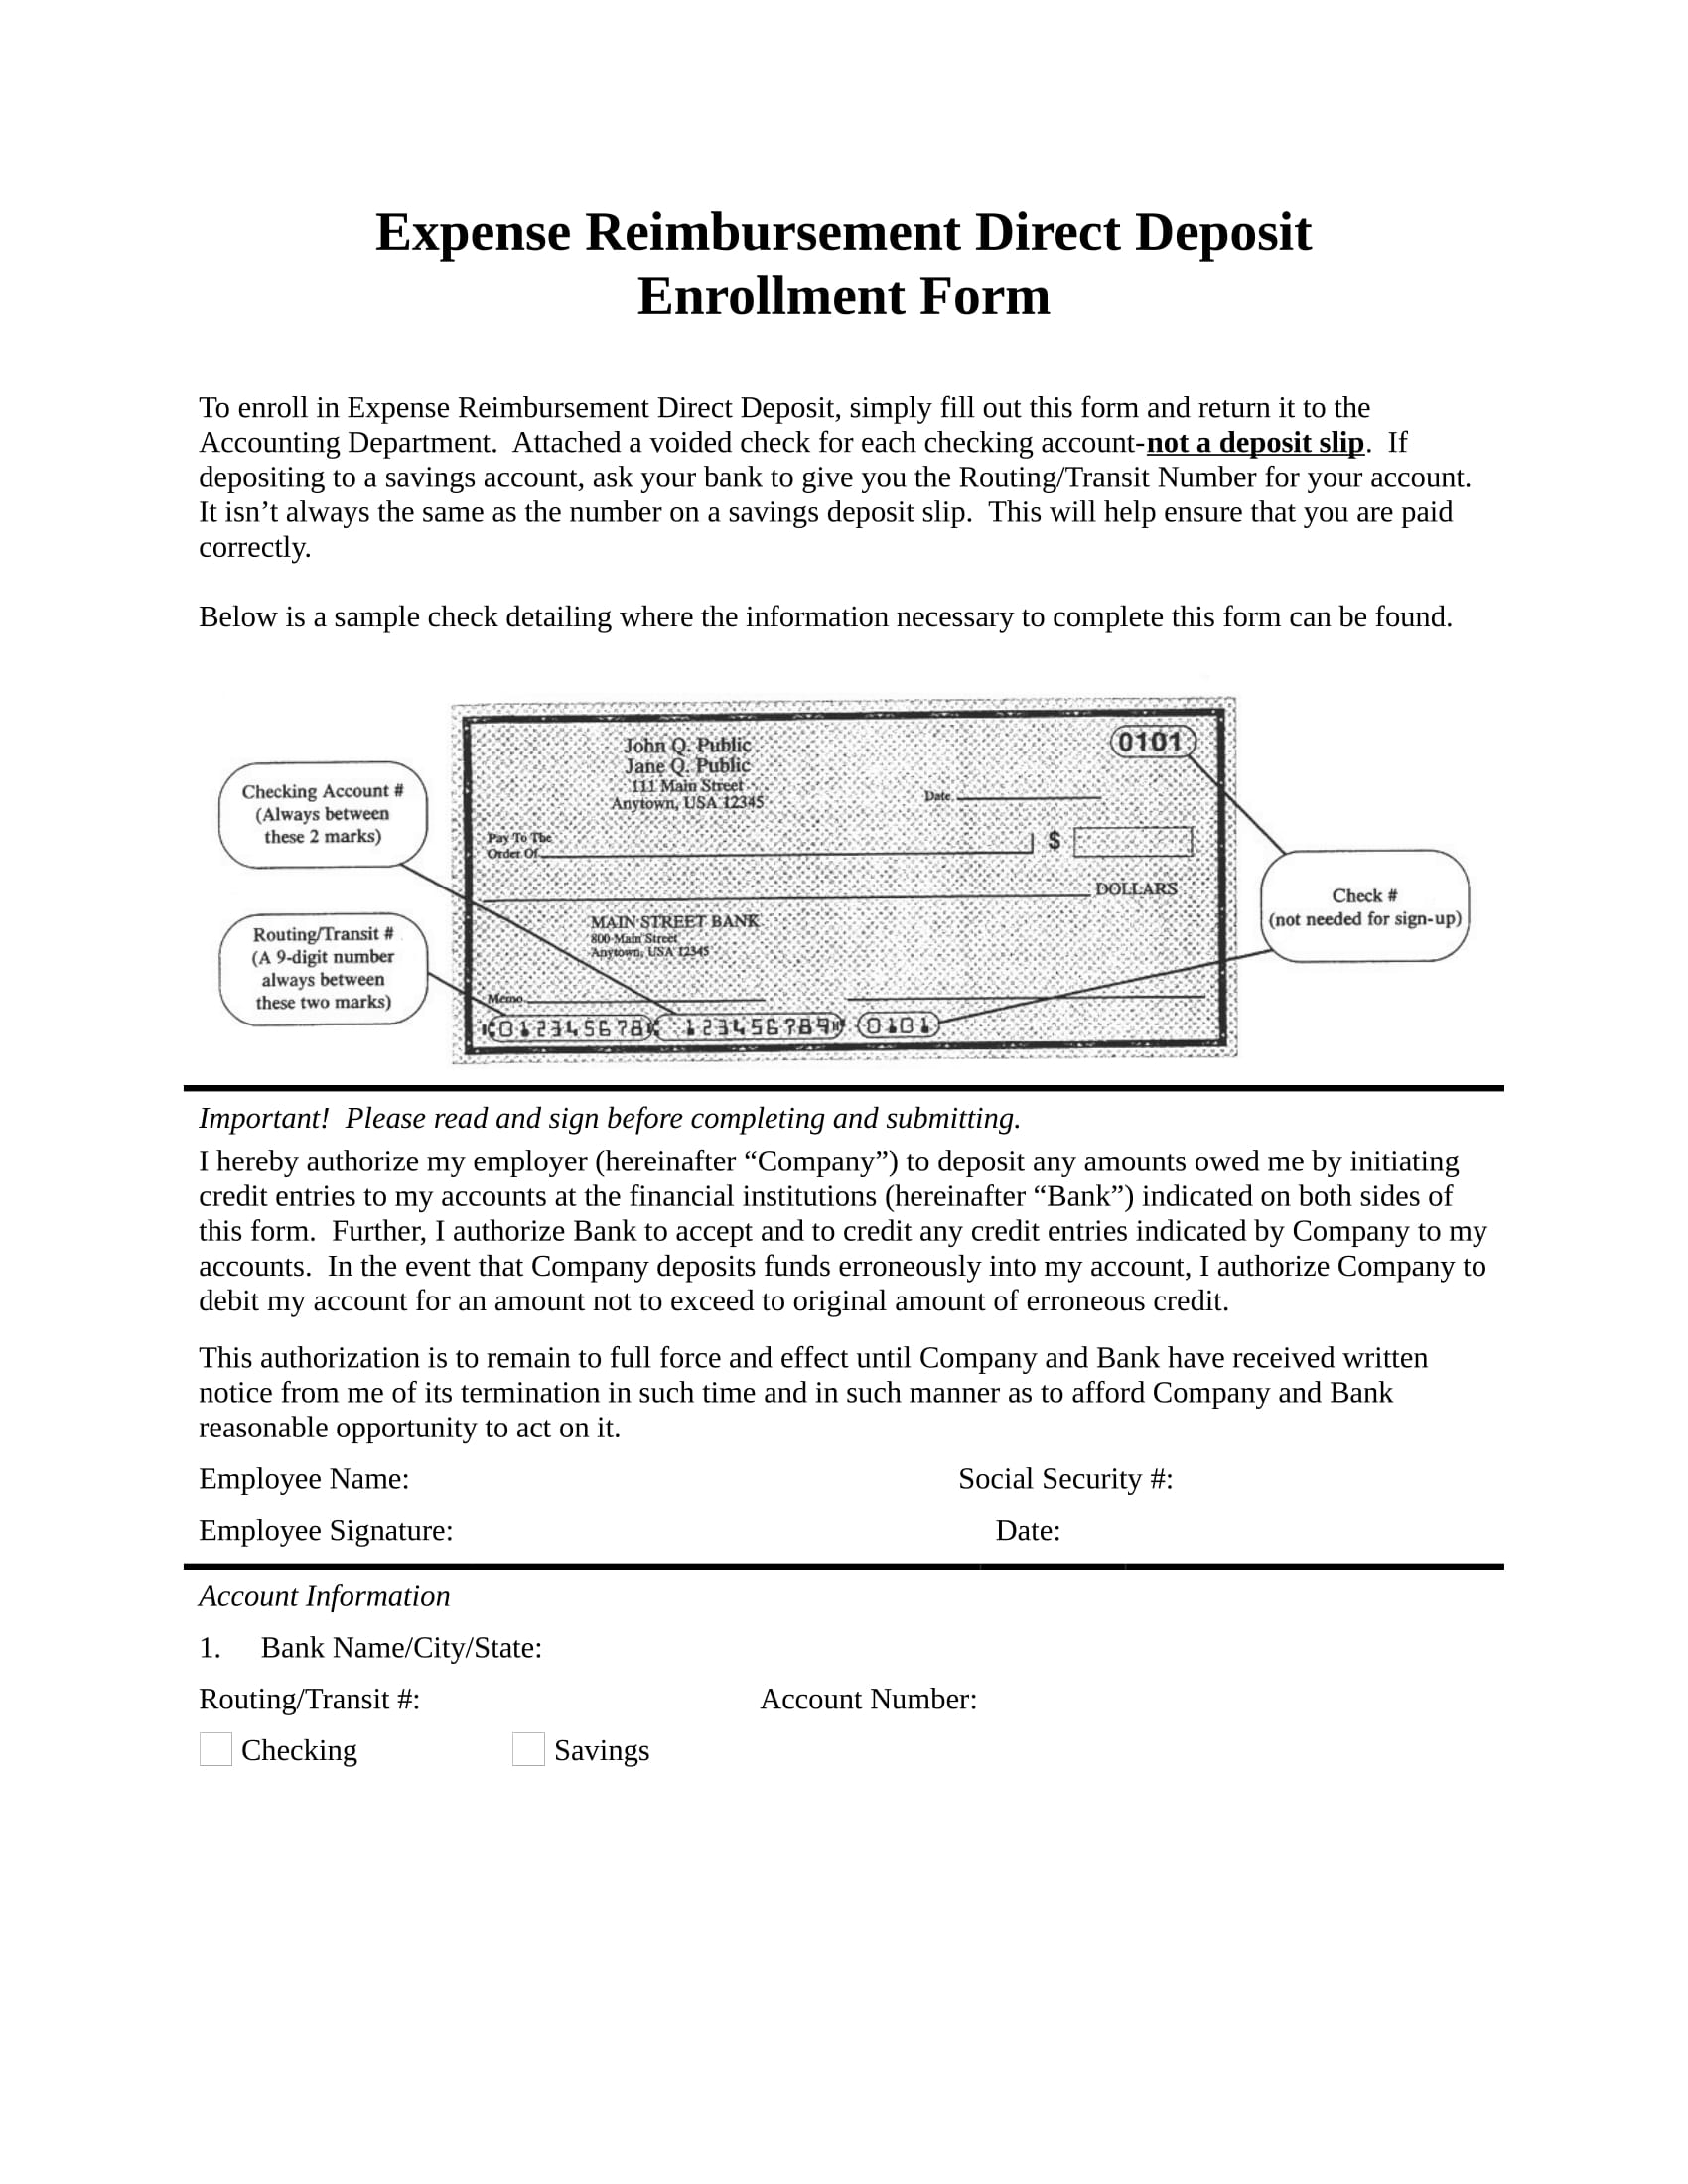 Direct Deposit Enrollment Form